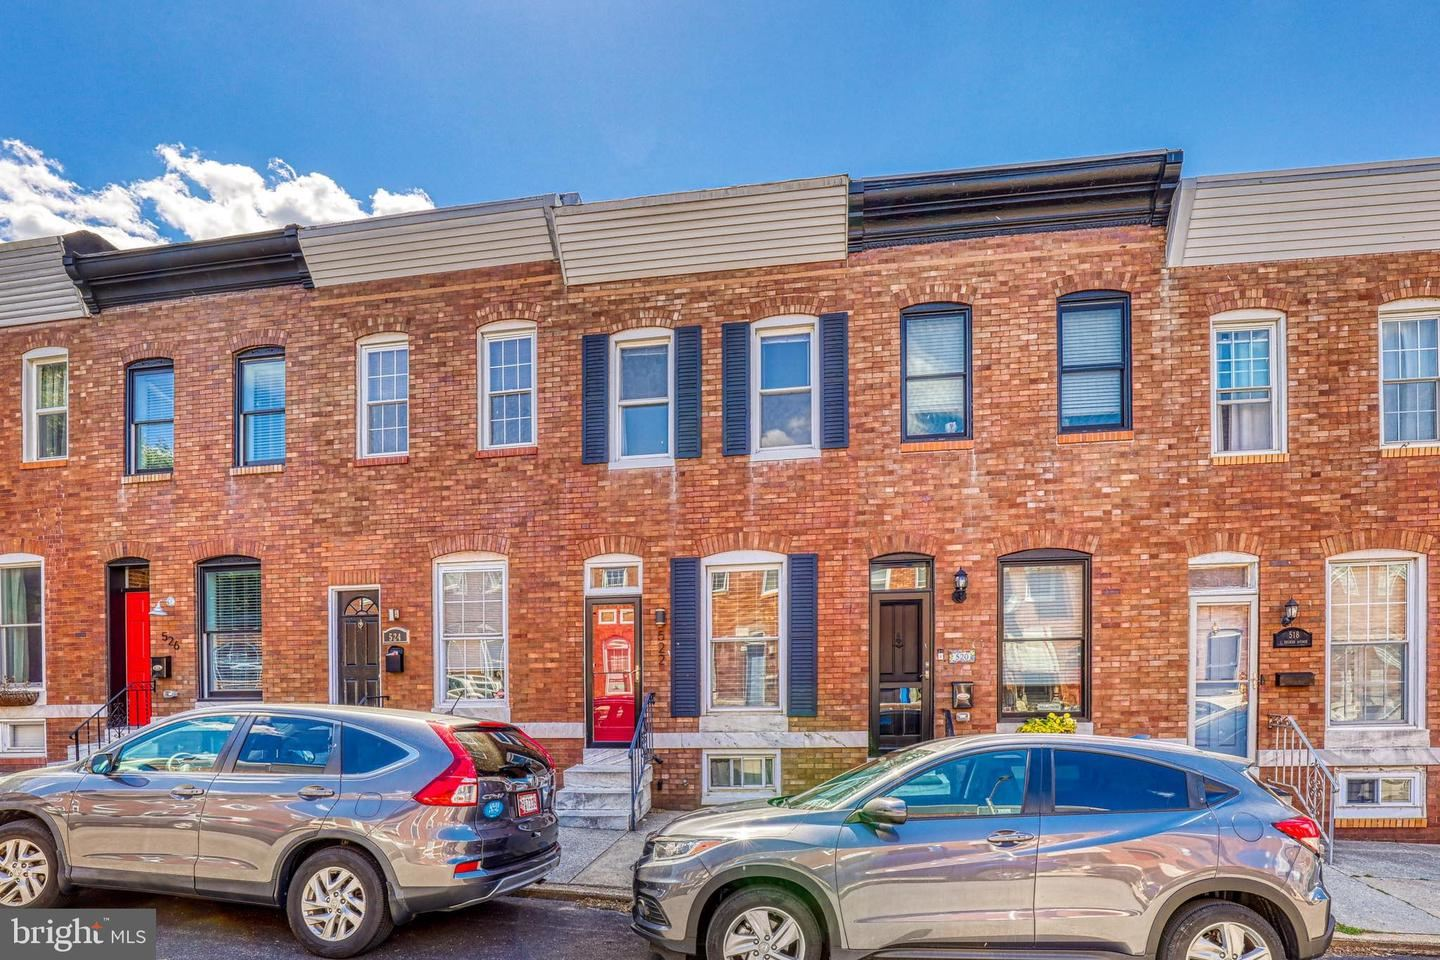 522 S DECKER AVE, Baltimore, MD 21224 - MLS#: MDBA550662